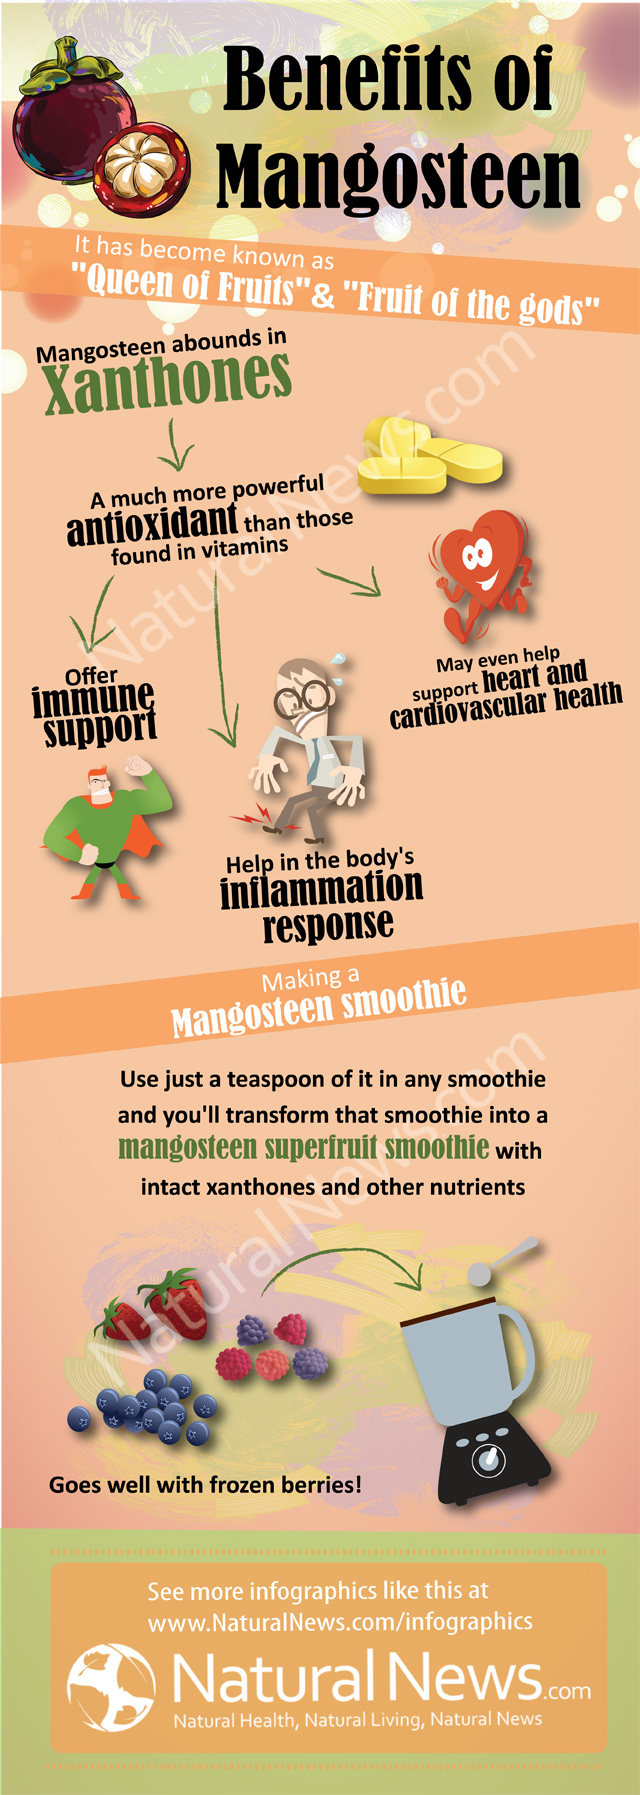 Benefits of Mangosteen